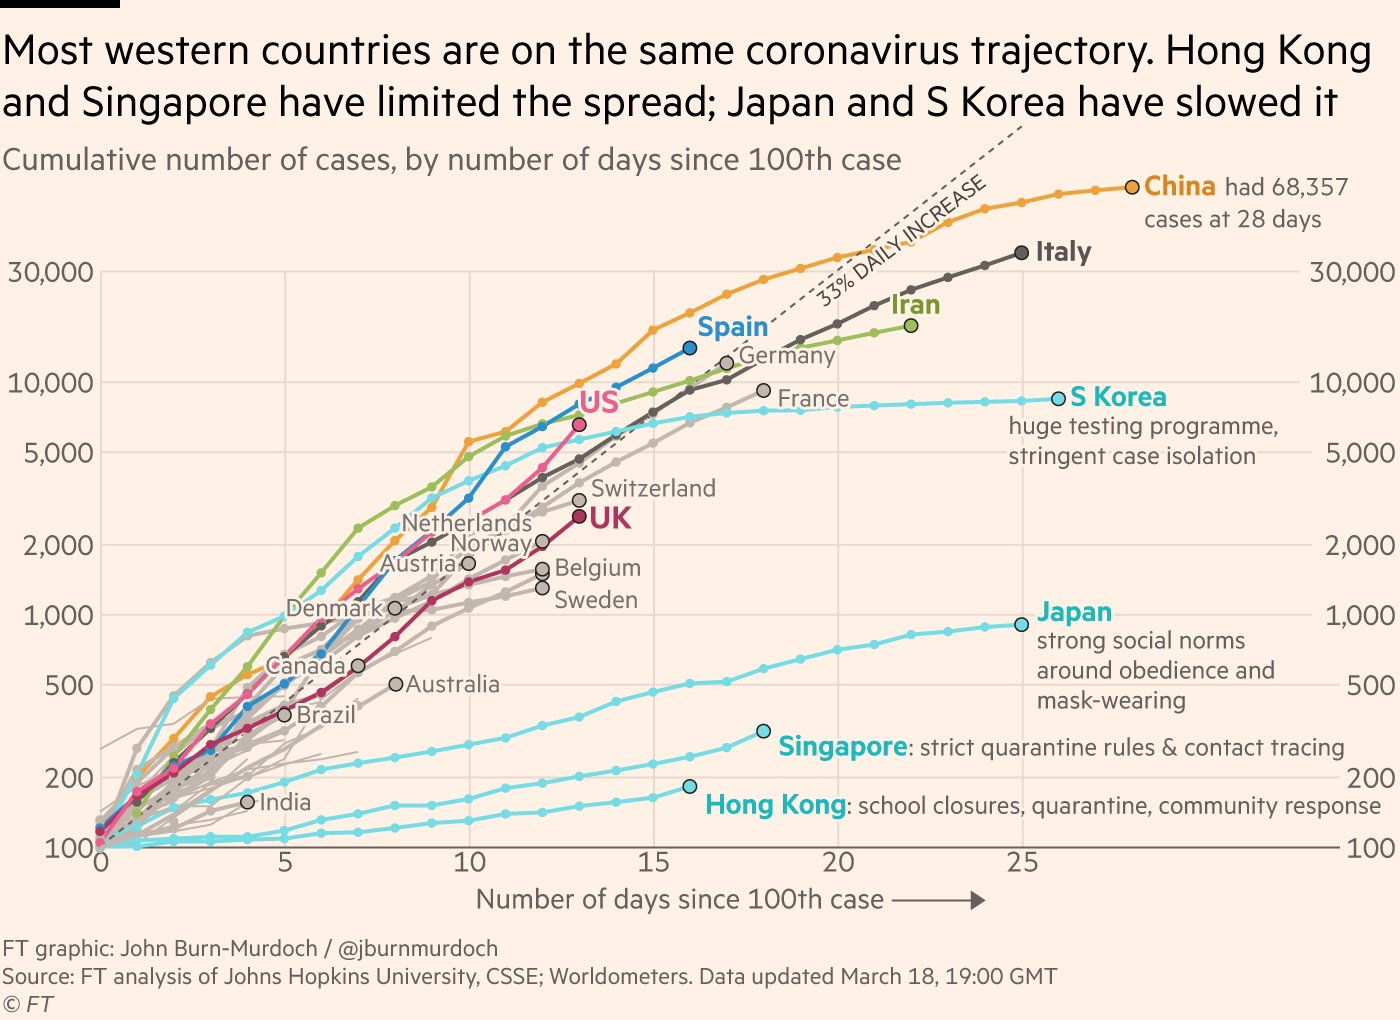 Why not follow the example of those countries that have sucessfully slowed or stopped the virus?